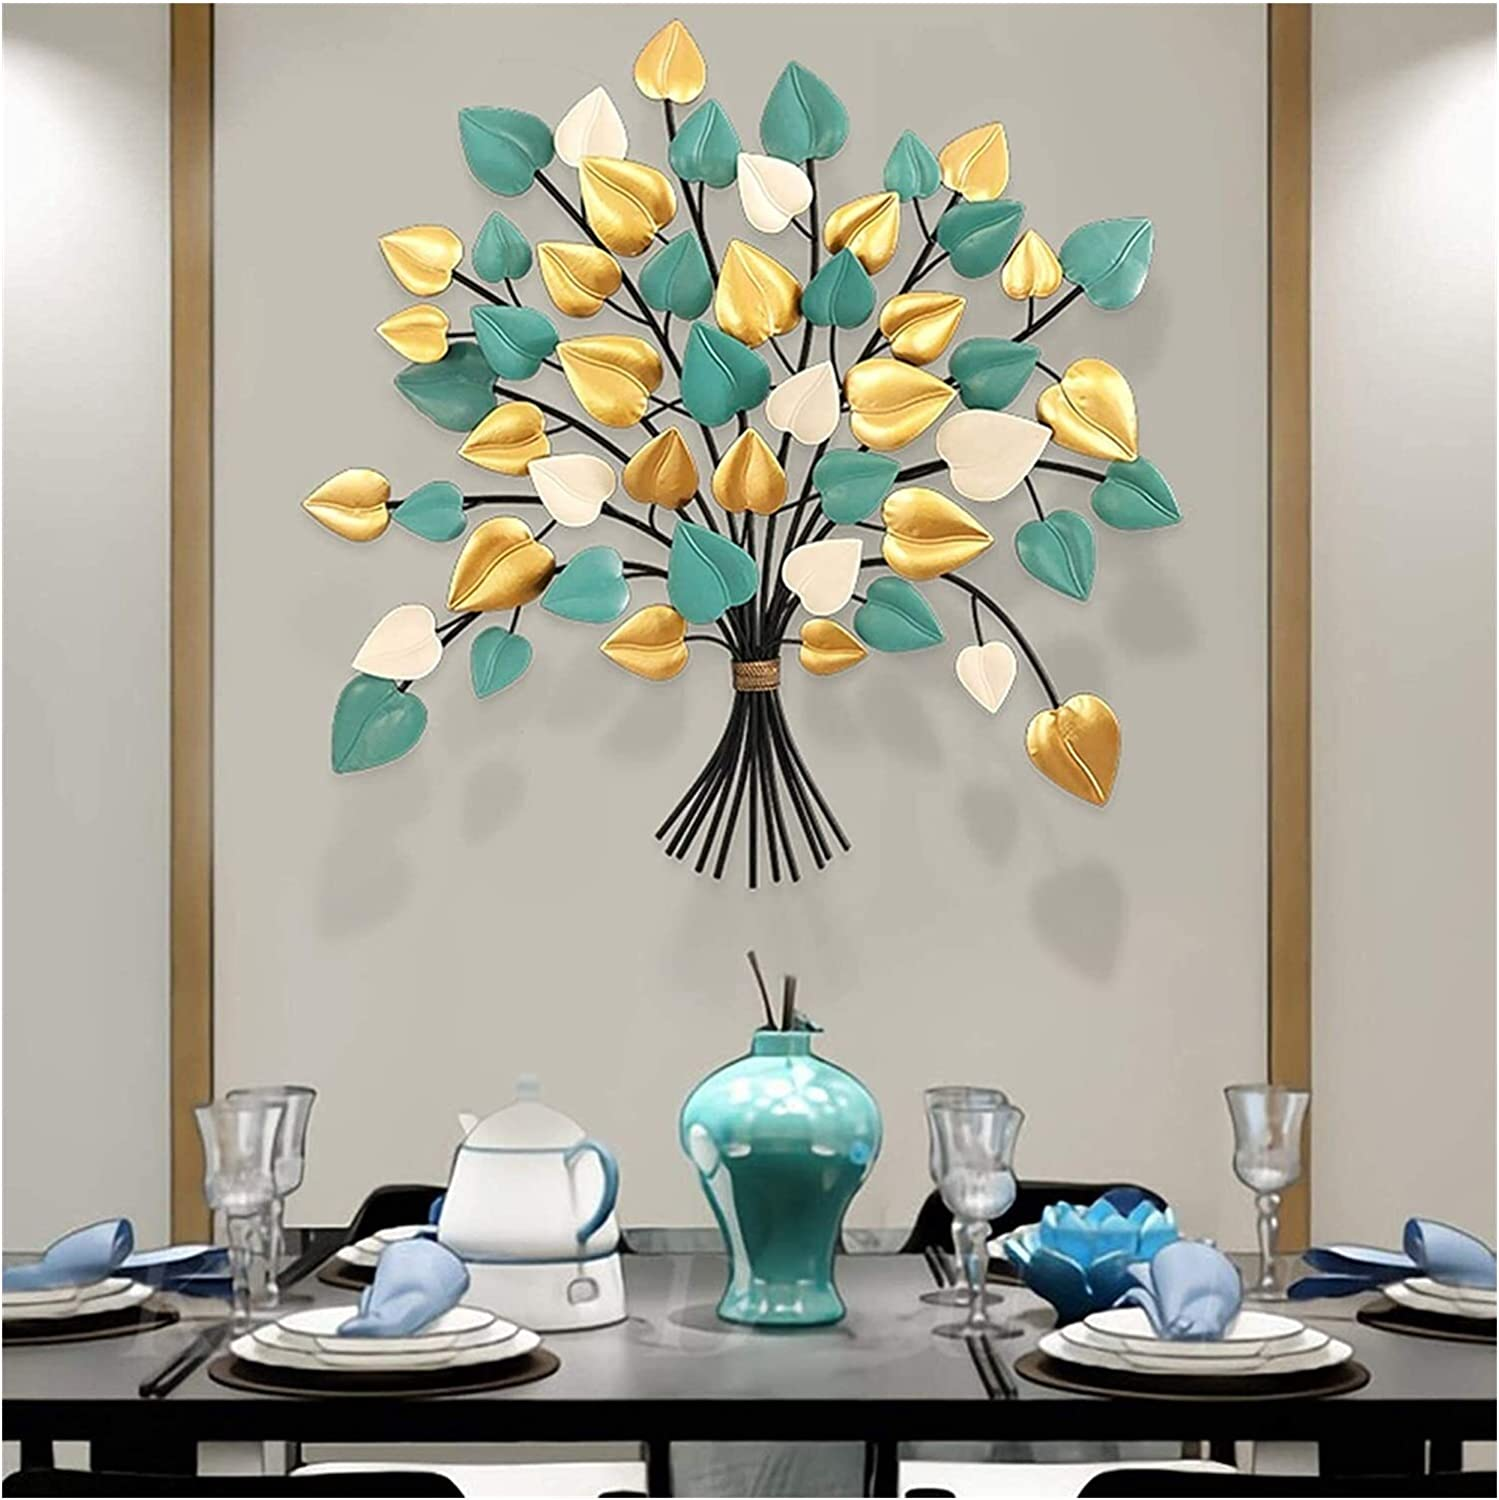 Metal Wall Art,Three Color Flower,3D Bouquet Wall Decor,Modern Wrought Iron Wall Decoration,Creative Heart Shaped Colorful Flowers,contemporary Creative Hanging Artwork Ornament Smooth Durable Ornamen